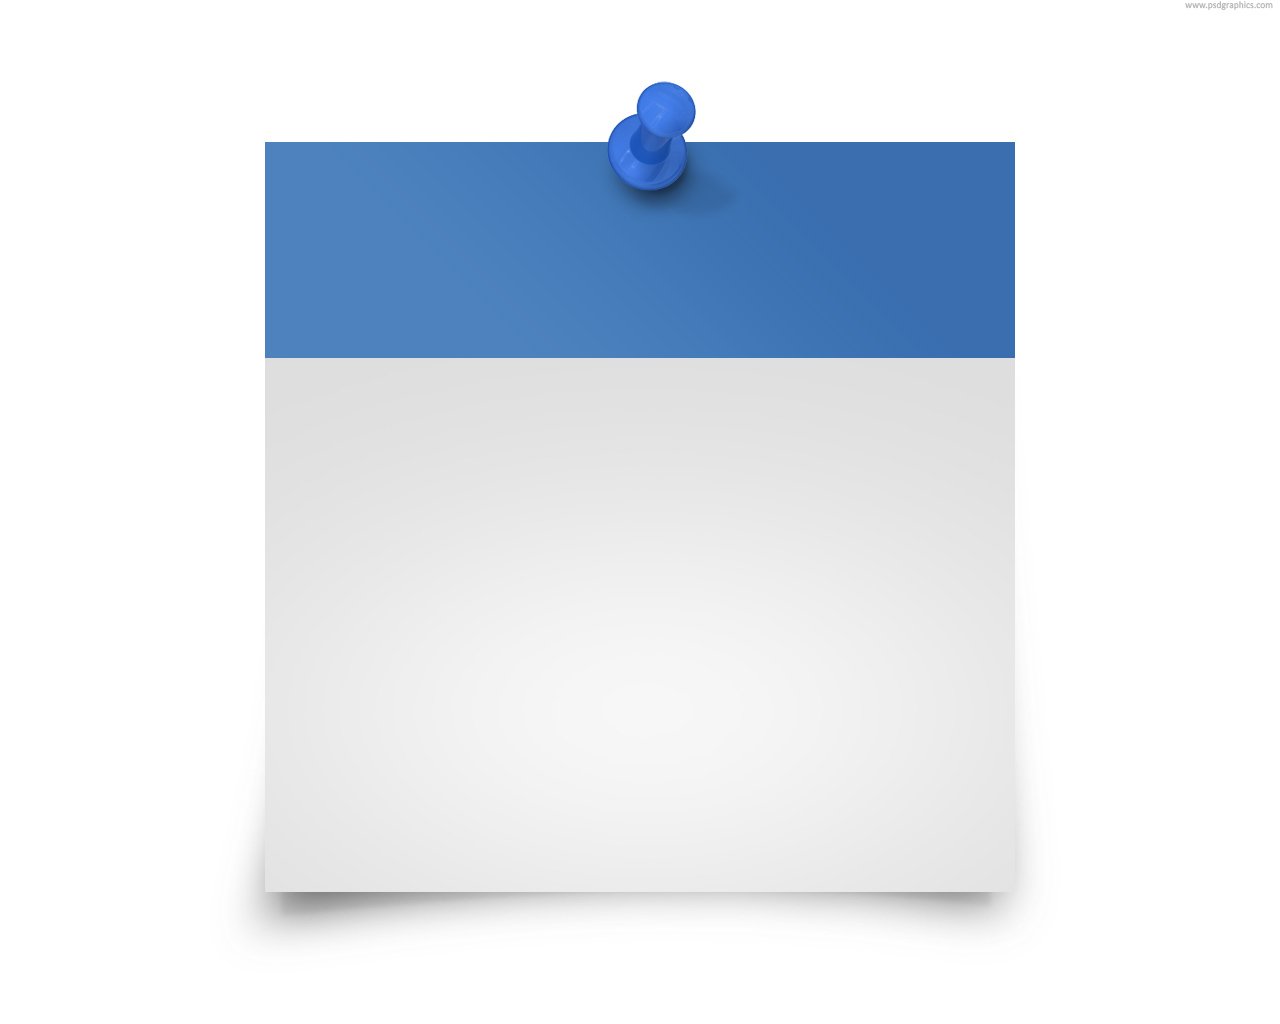 Blank Calendar Icon Png #41262 - Free Icons Library